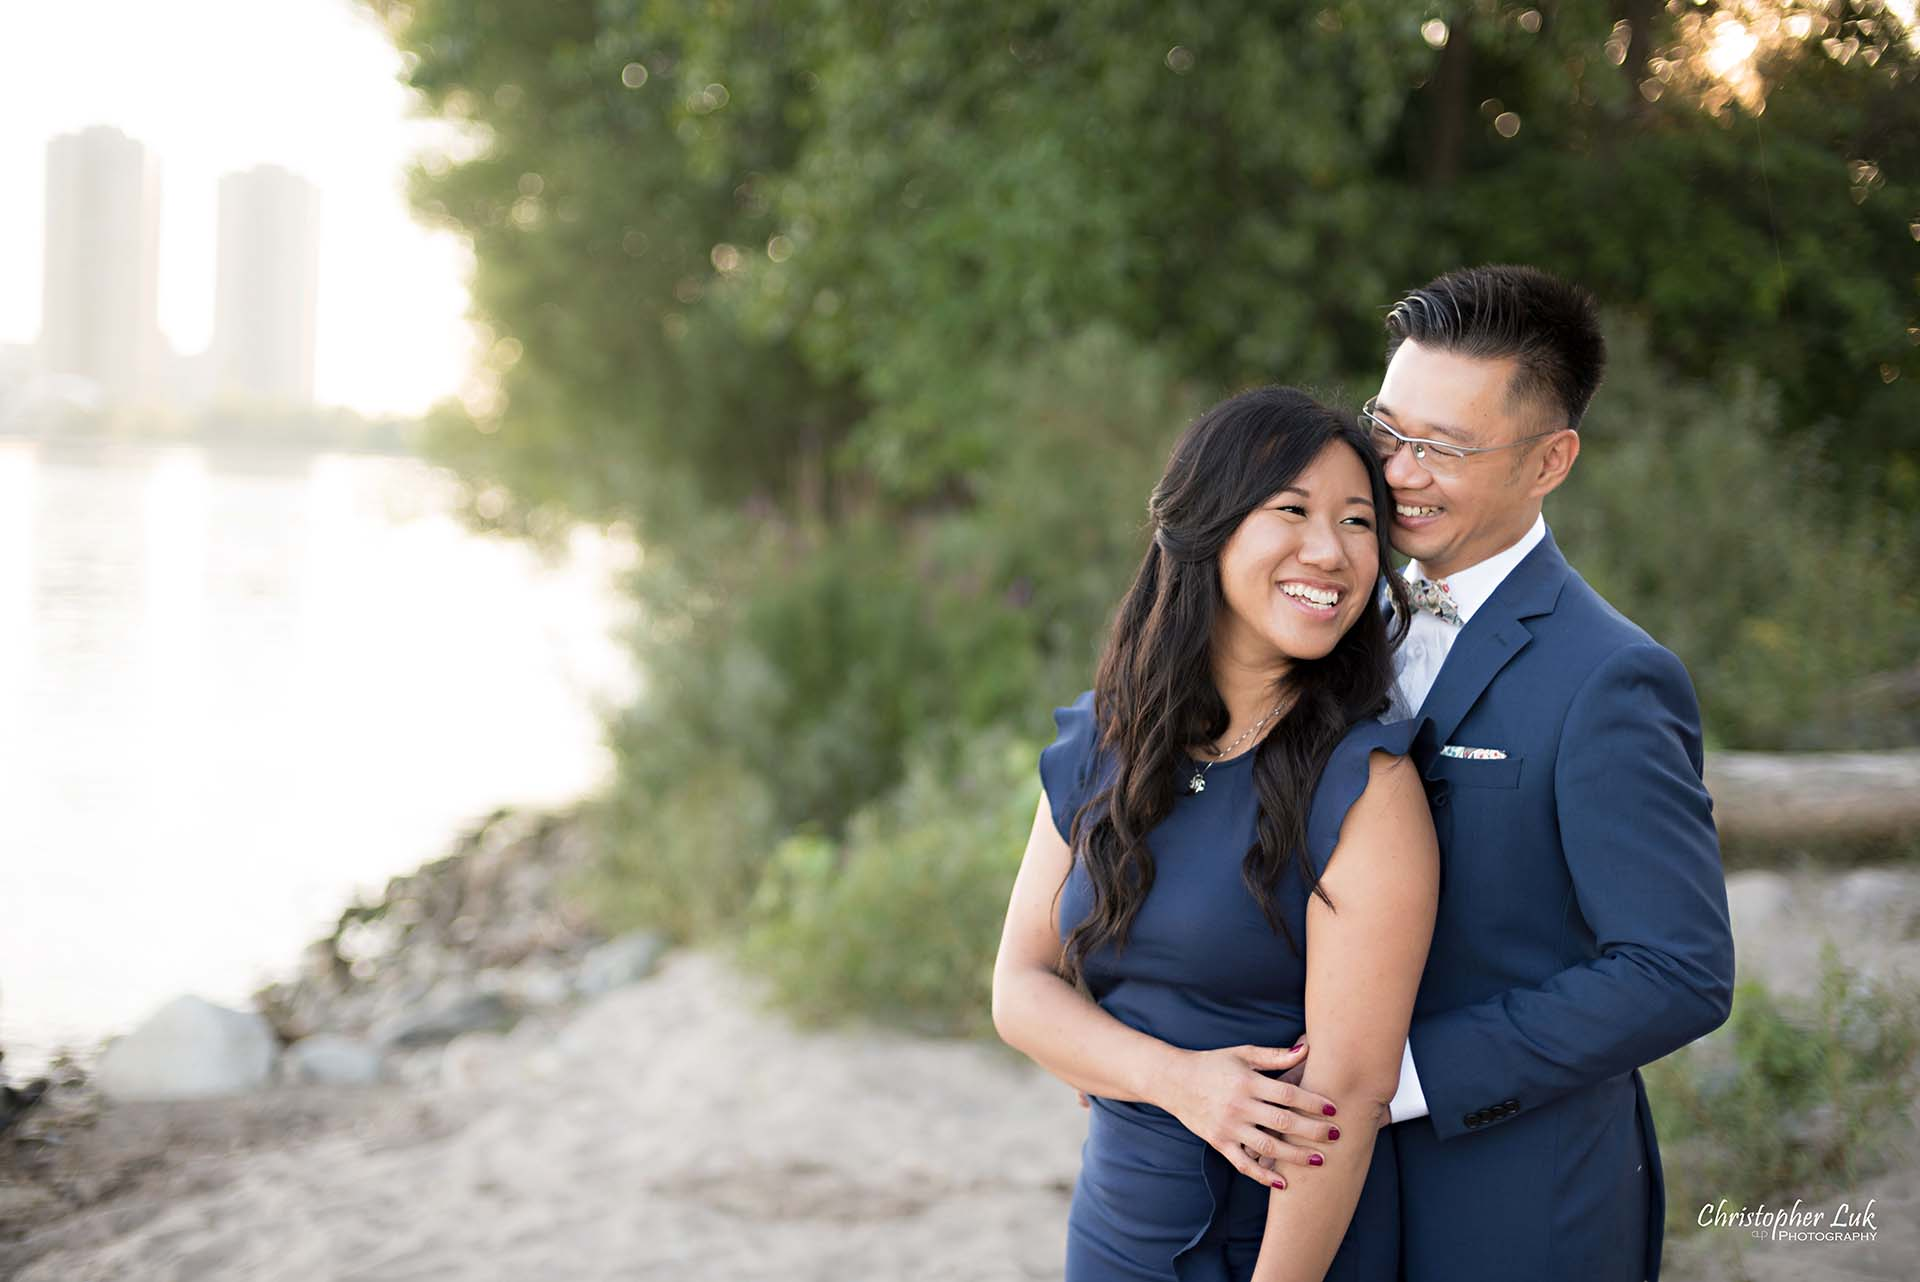 Christopher Luk Toronto Wedding Photographer - Engagement Photography - Sunnyside Pavilion Park Beach Boardwalk Toronto - Bride and Groom Natural Candid Photojournalistic Hug Smile Trees Close Love